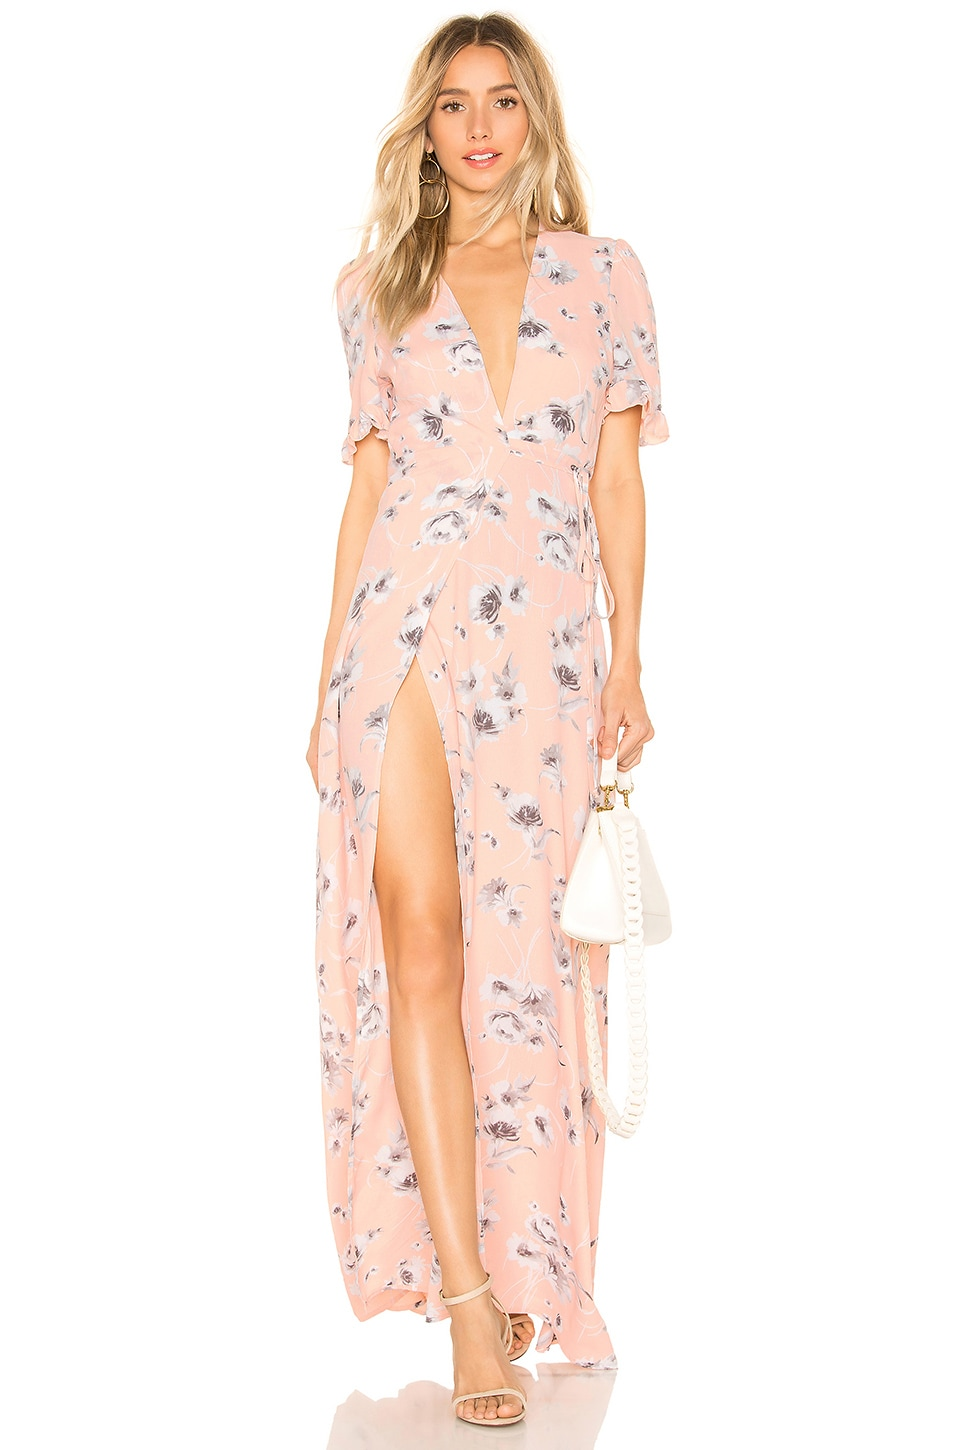 FLYNN SKYE Celeste Maxi Dress in Evening Bouquet